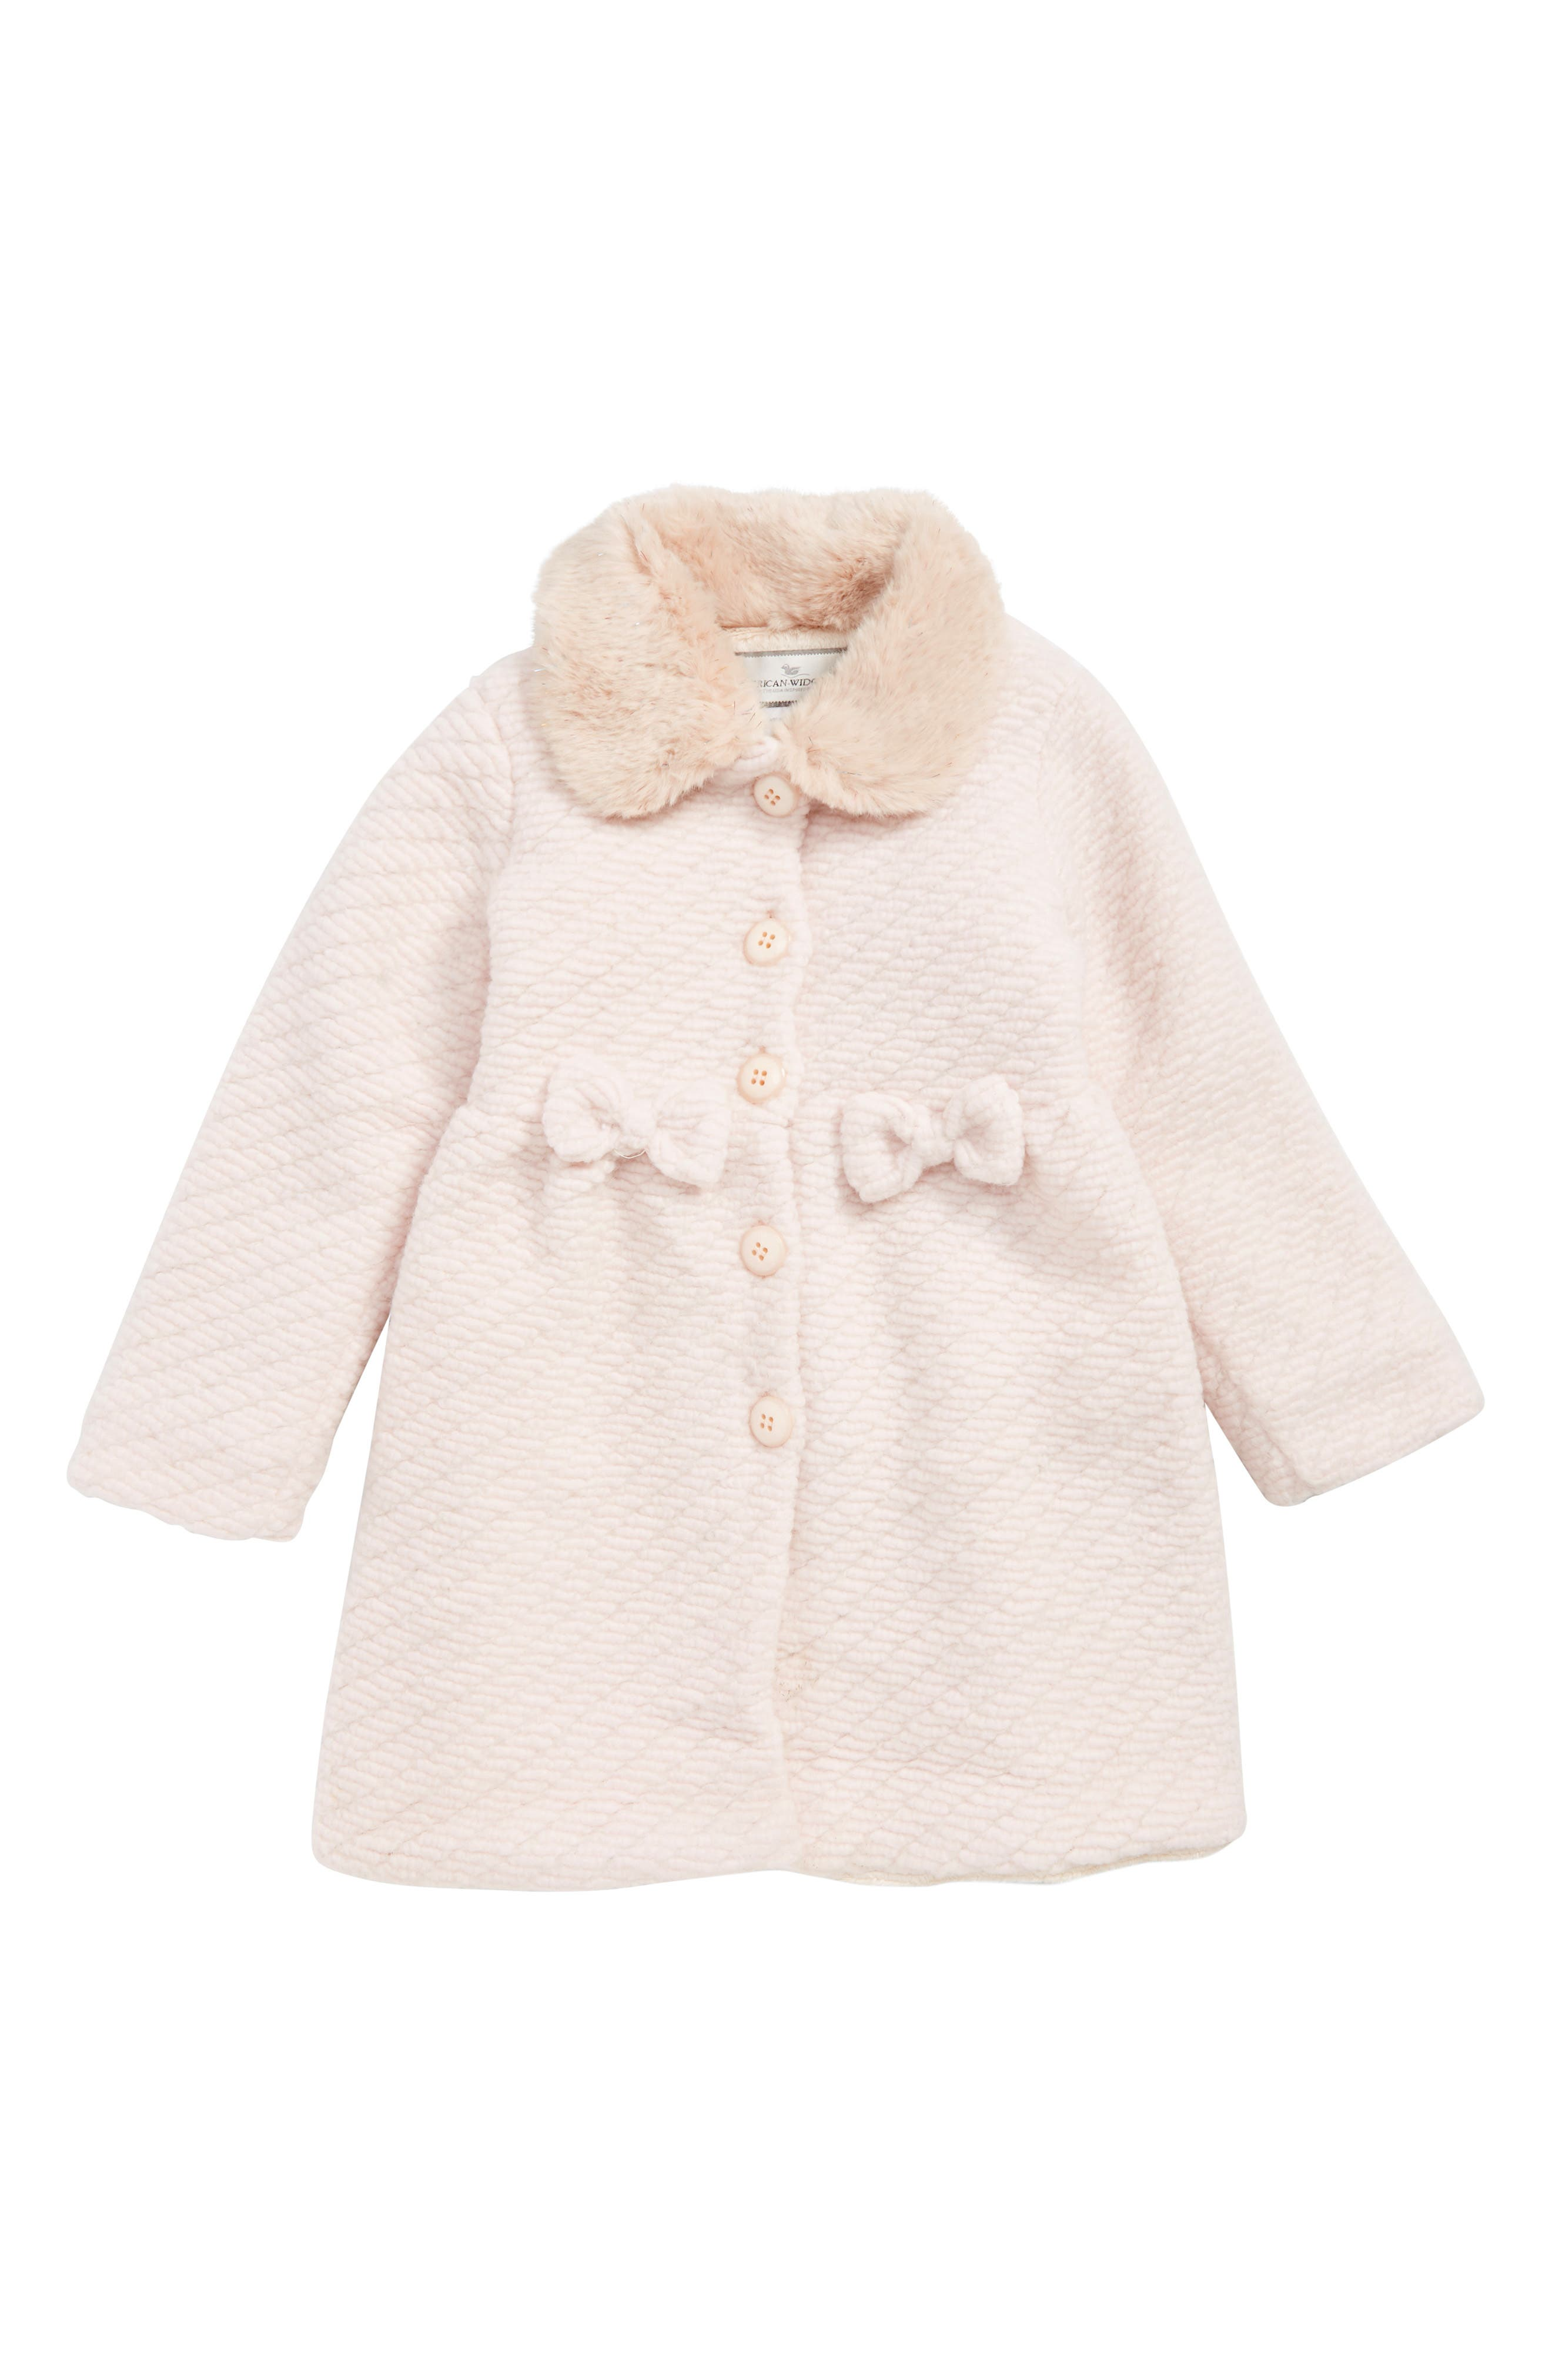 WIDGEON Faux Fur Collar Coat, Main, color, PINK TWILL